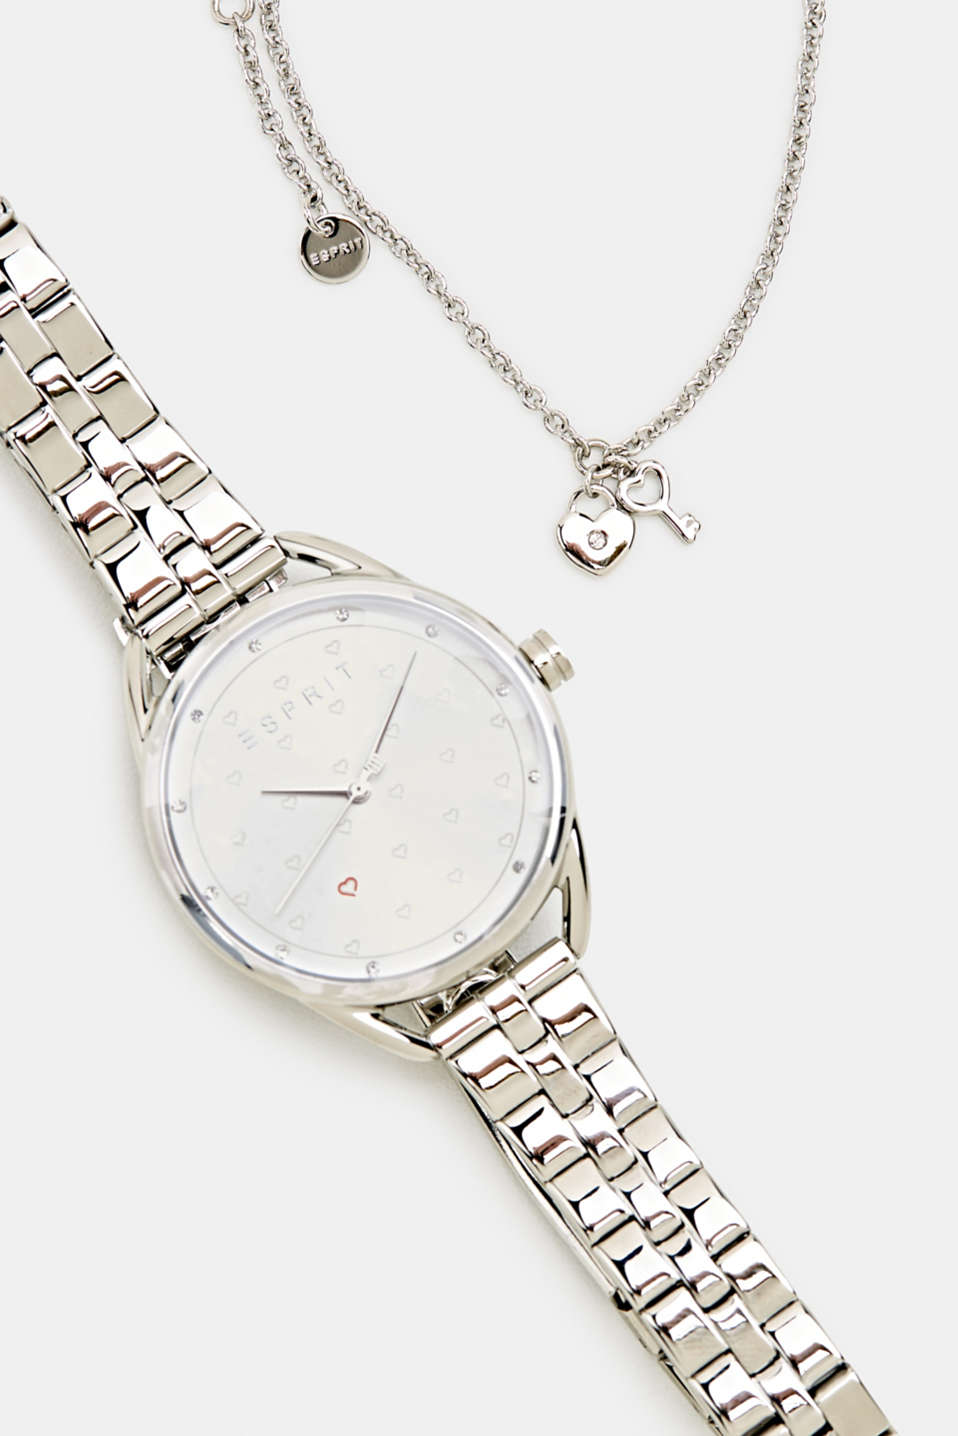 Esprit - Bracelet and watch set, stainless steel